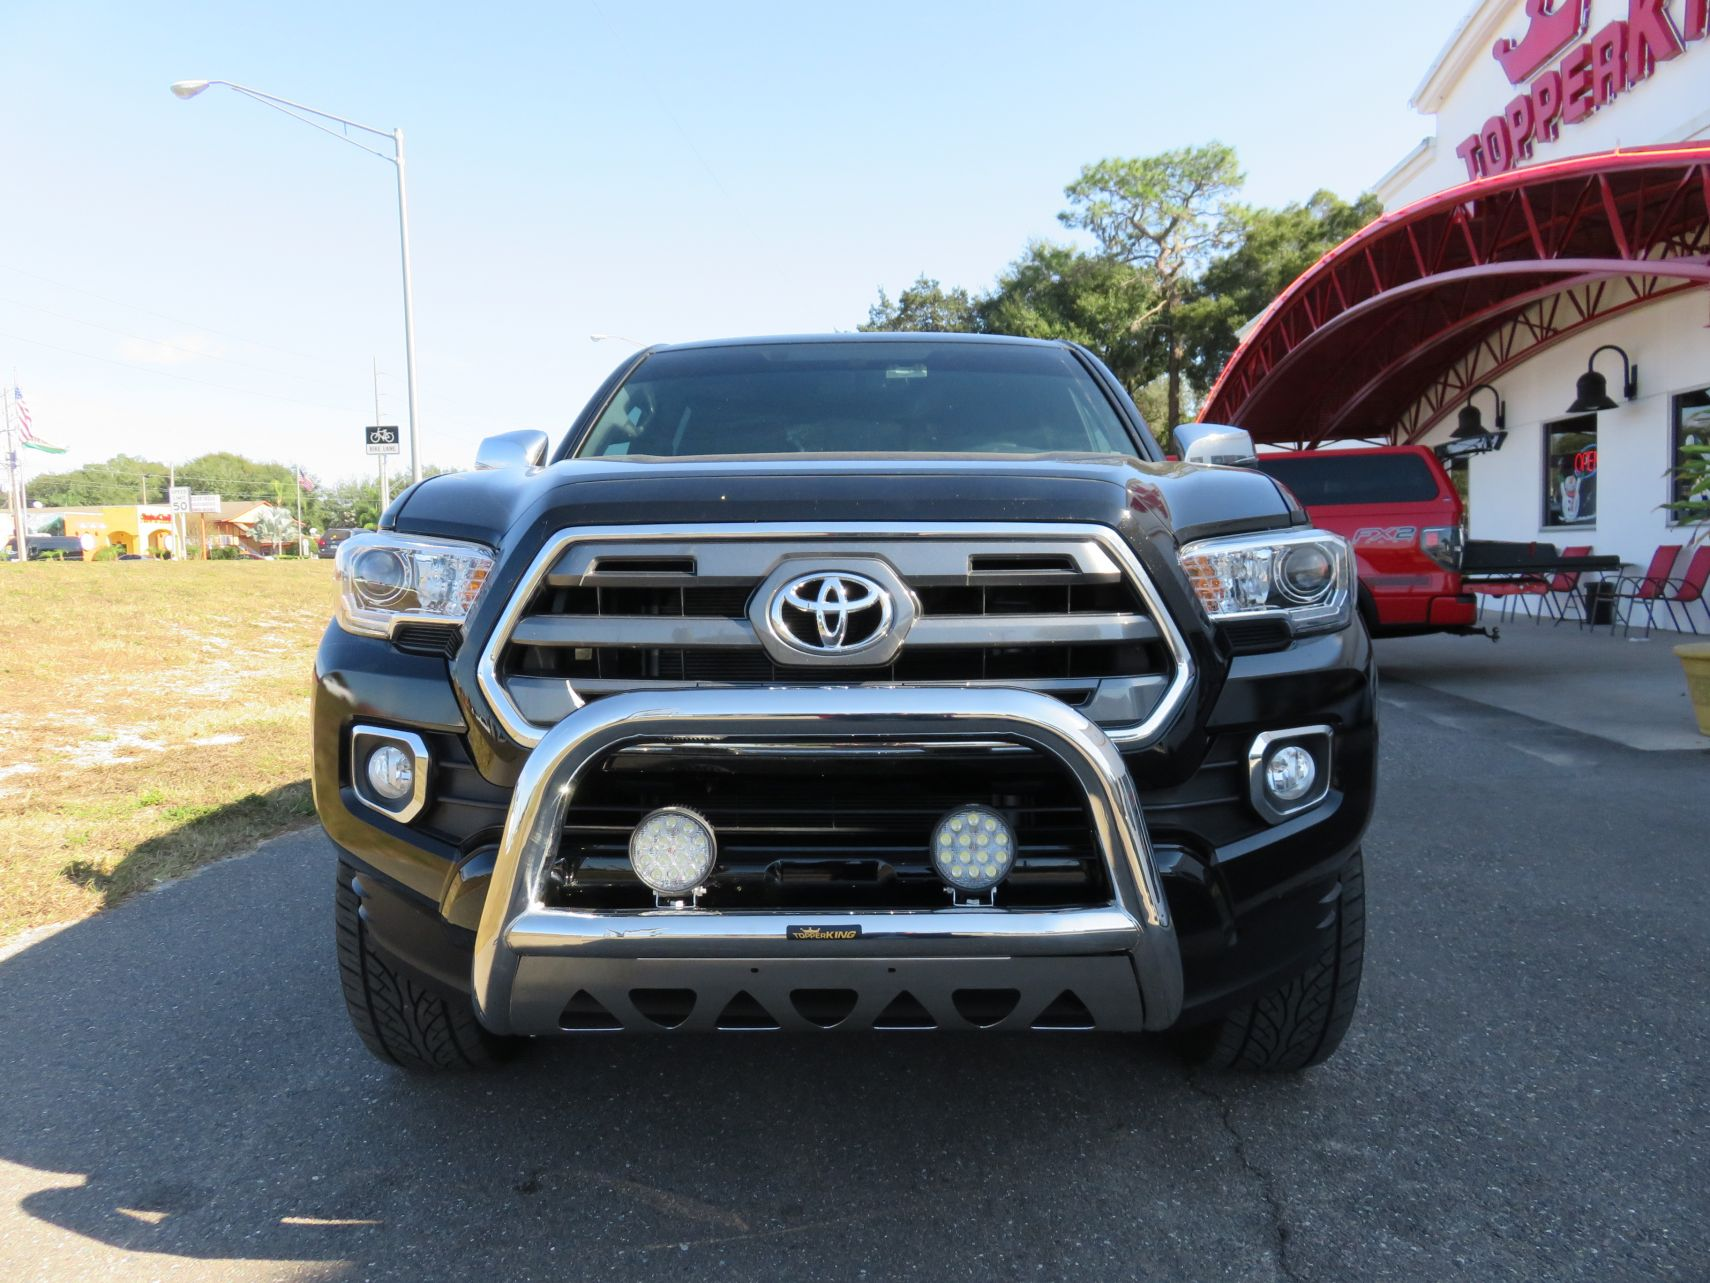 Toyota tacoma go rhino bull bar with lights topperking back to articles aloadofball Image collections